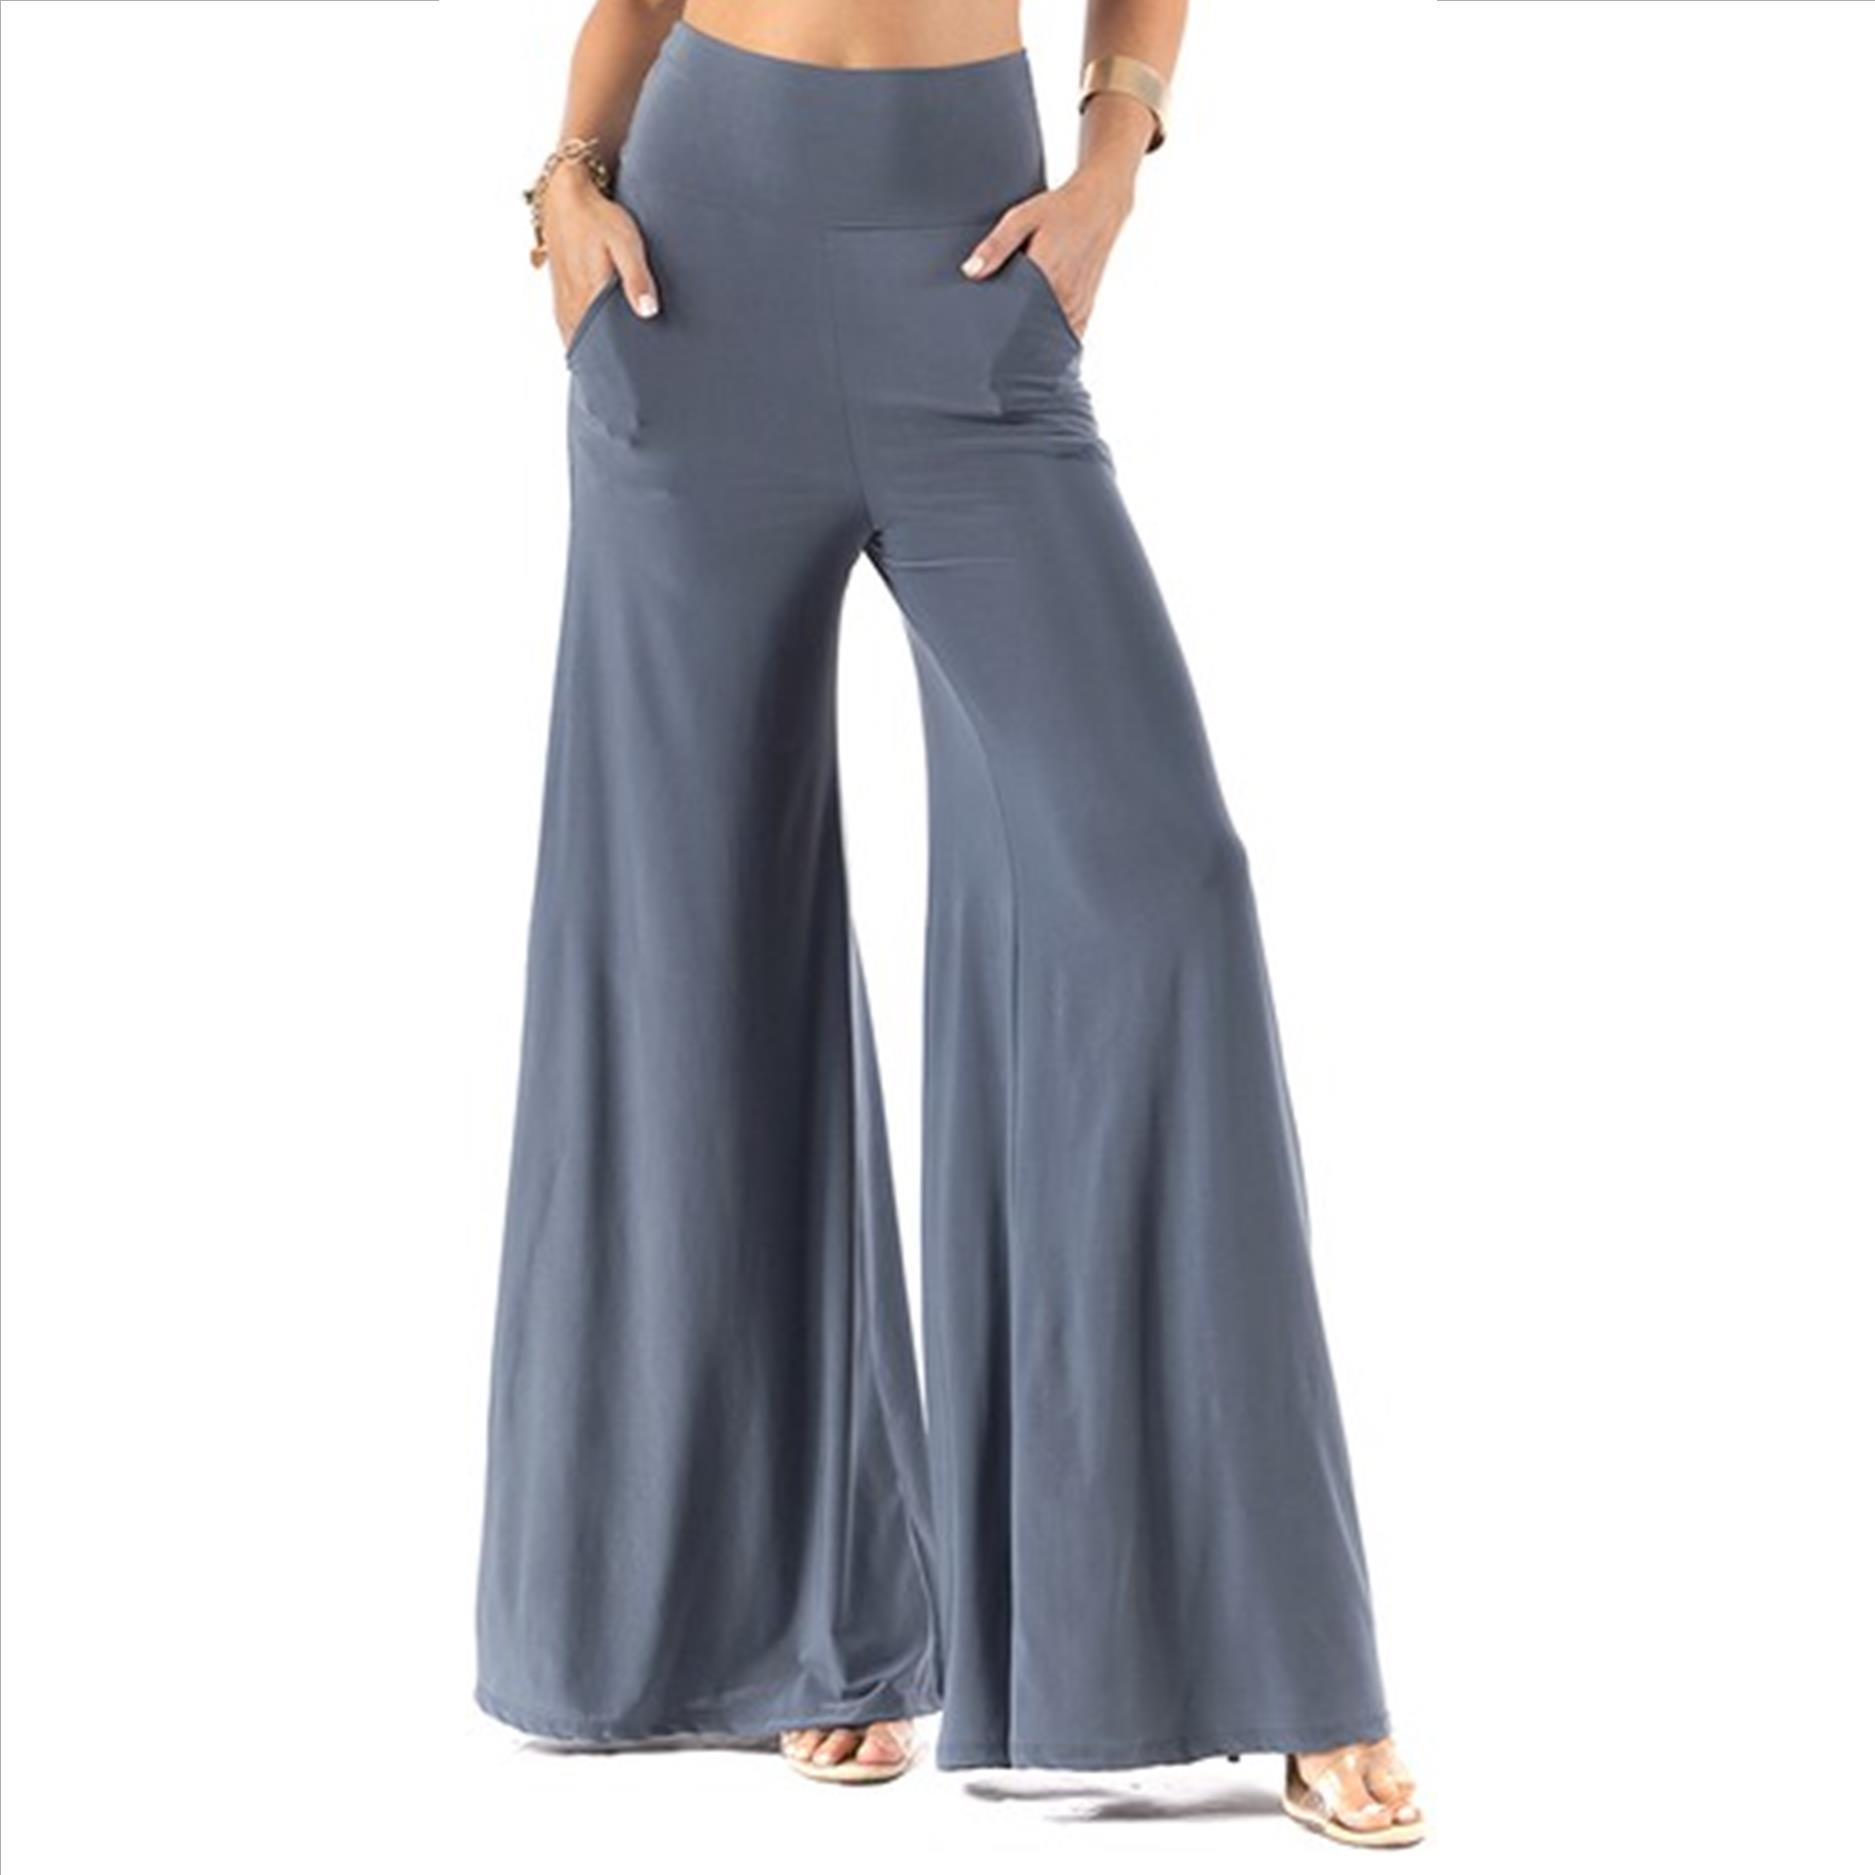 Plus Size Palazzo Pants with Pockets - Slate Grey